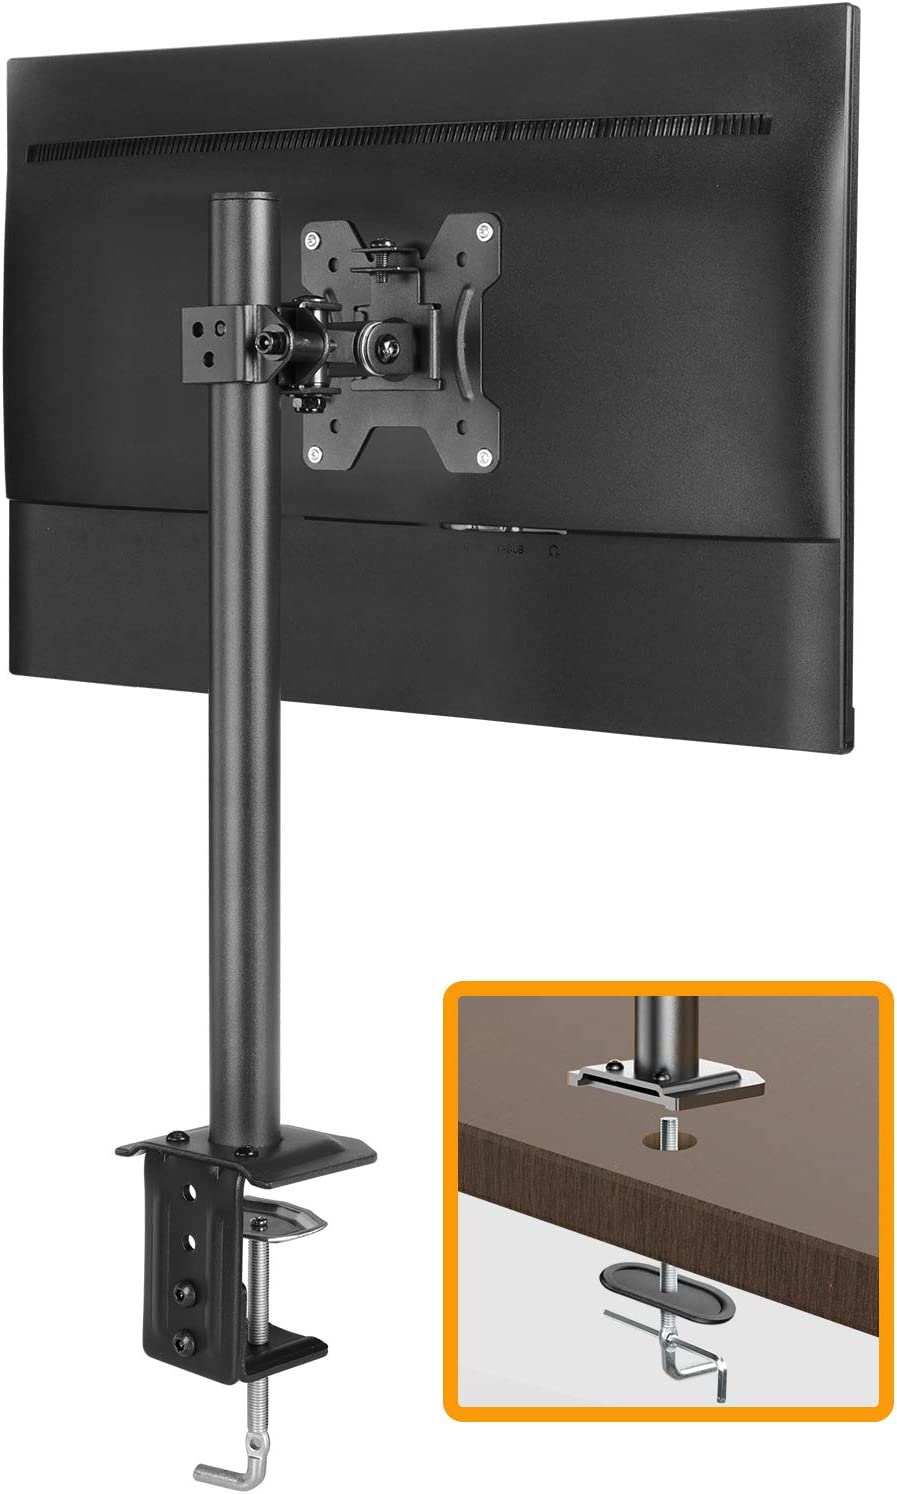 "ErGear Monitor Mount for 13-32"" Computer Screens, Improved LCD/LED Monitor Riser, Height/Angle Adjustable Single Desk Mount Stand,Holds up to 17.6lbs, Black - EGCM12"